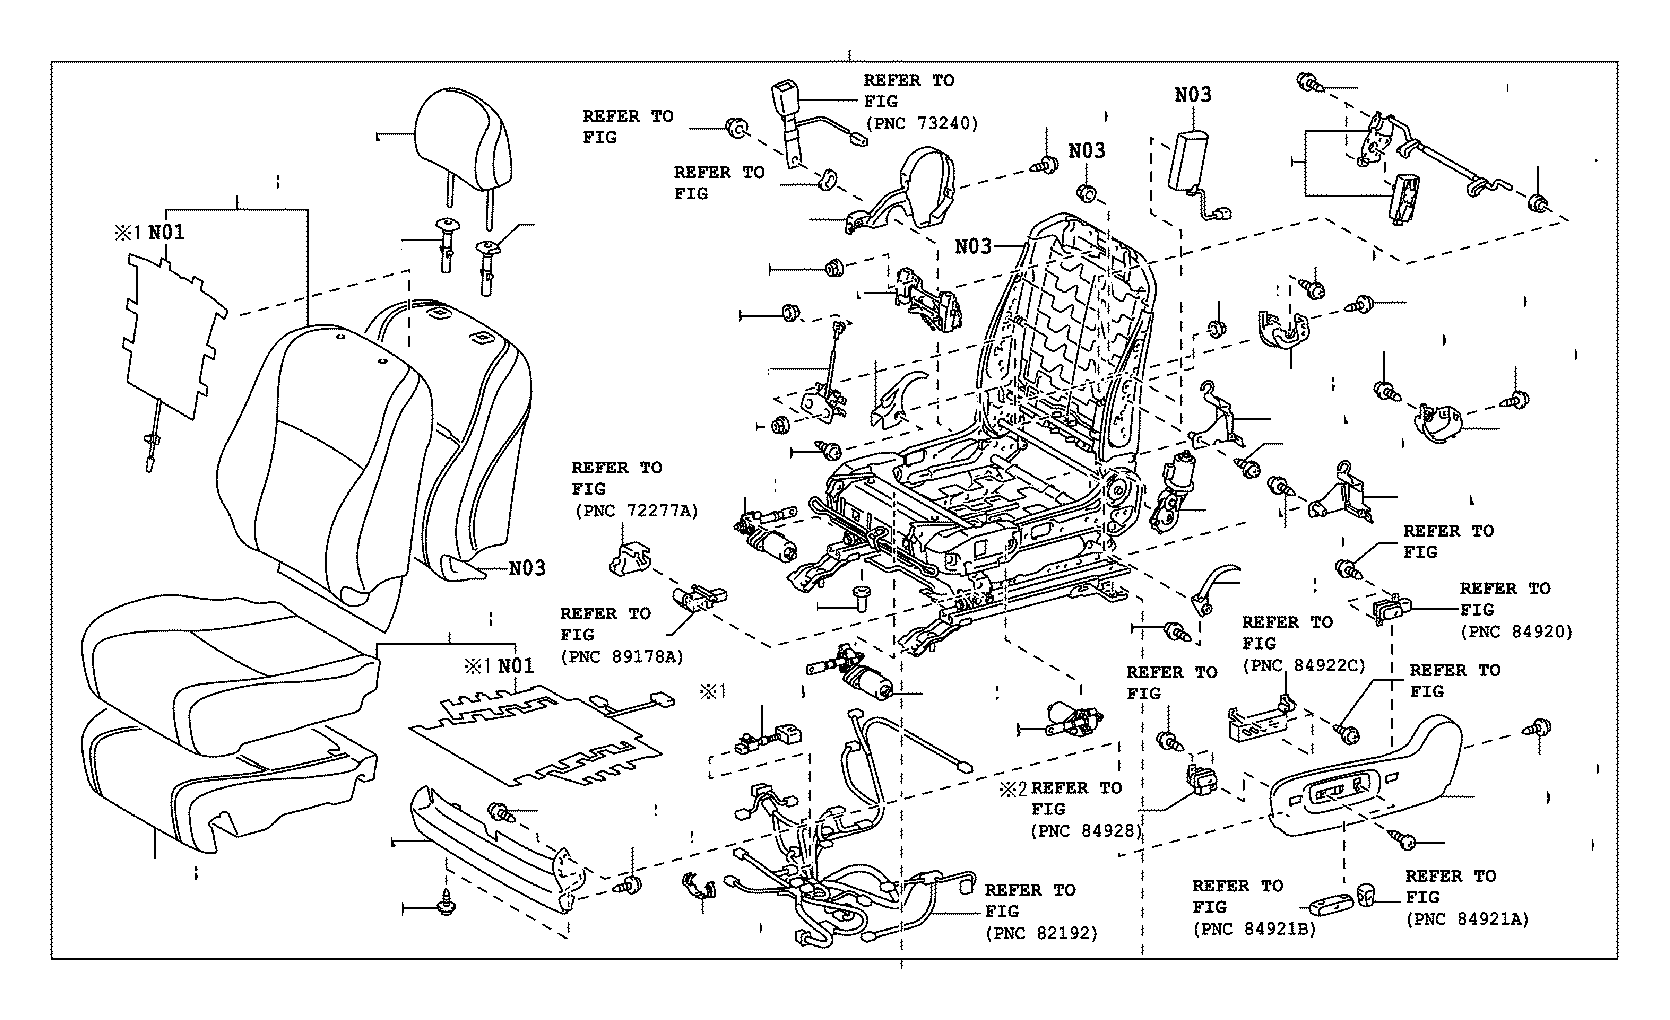 Toyota Venza Seat Parts Diagram. Seat. Auto Wiring Diagram